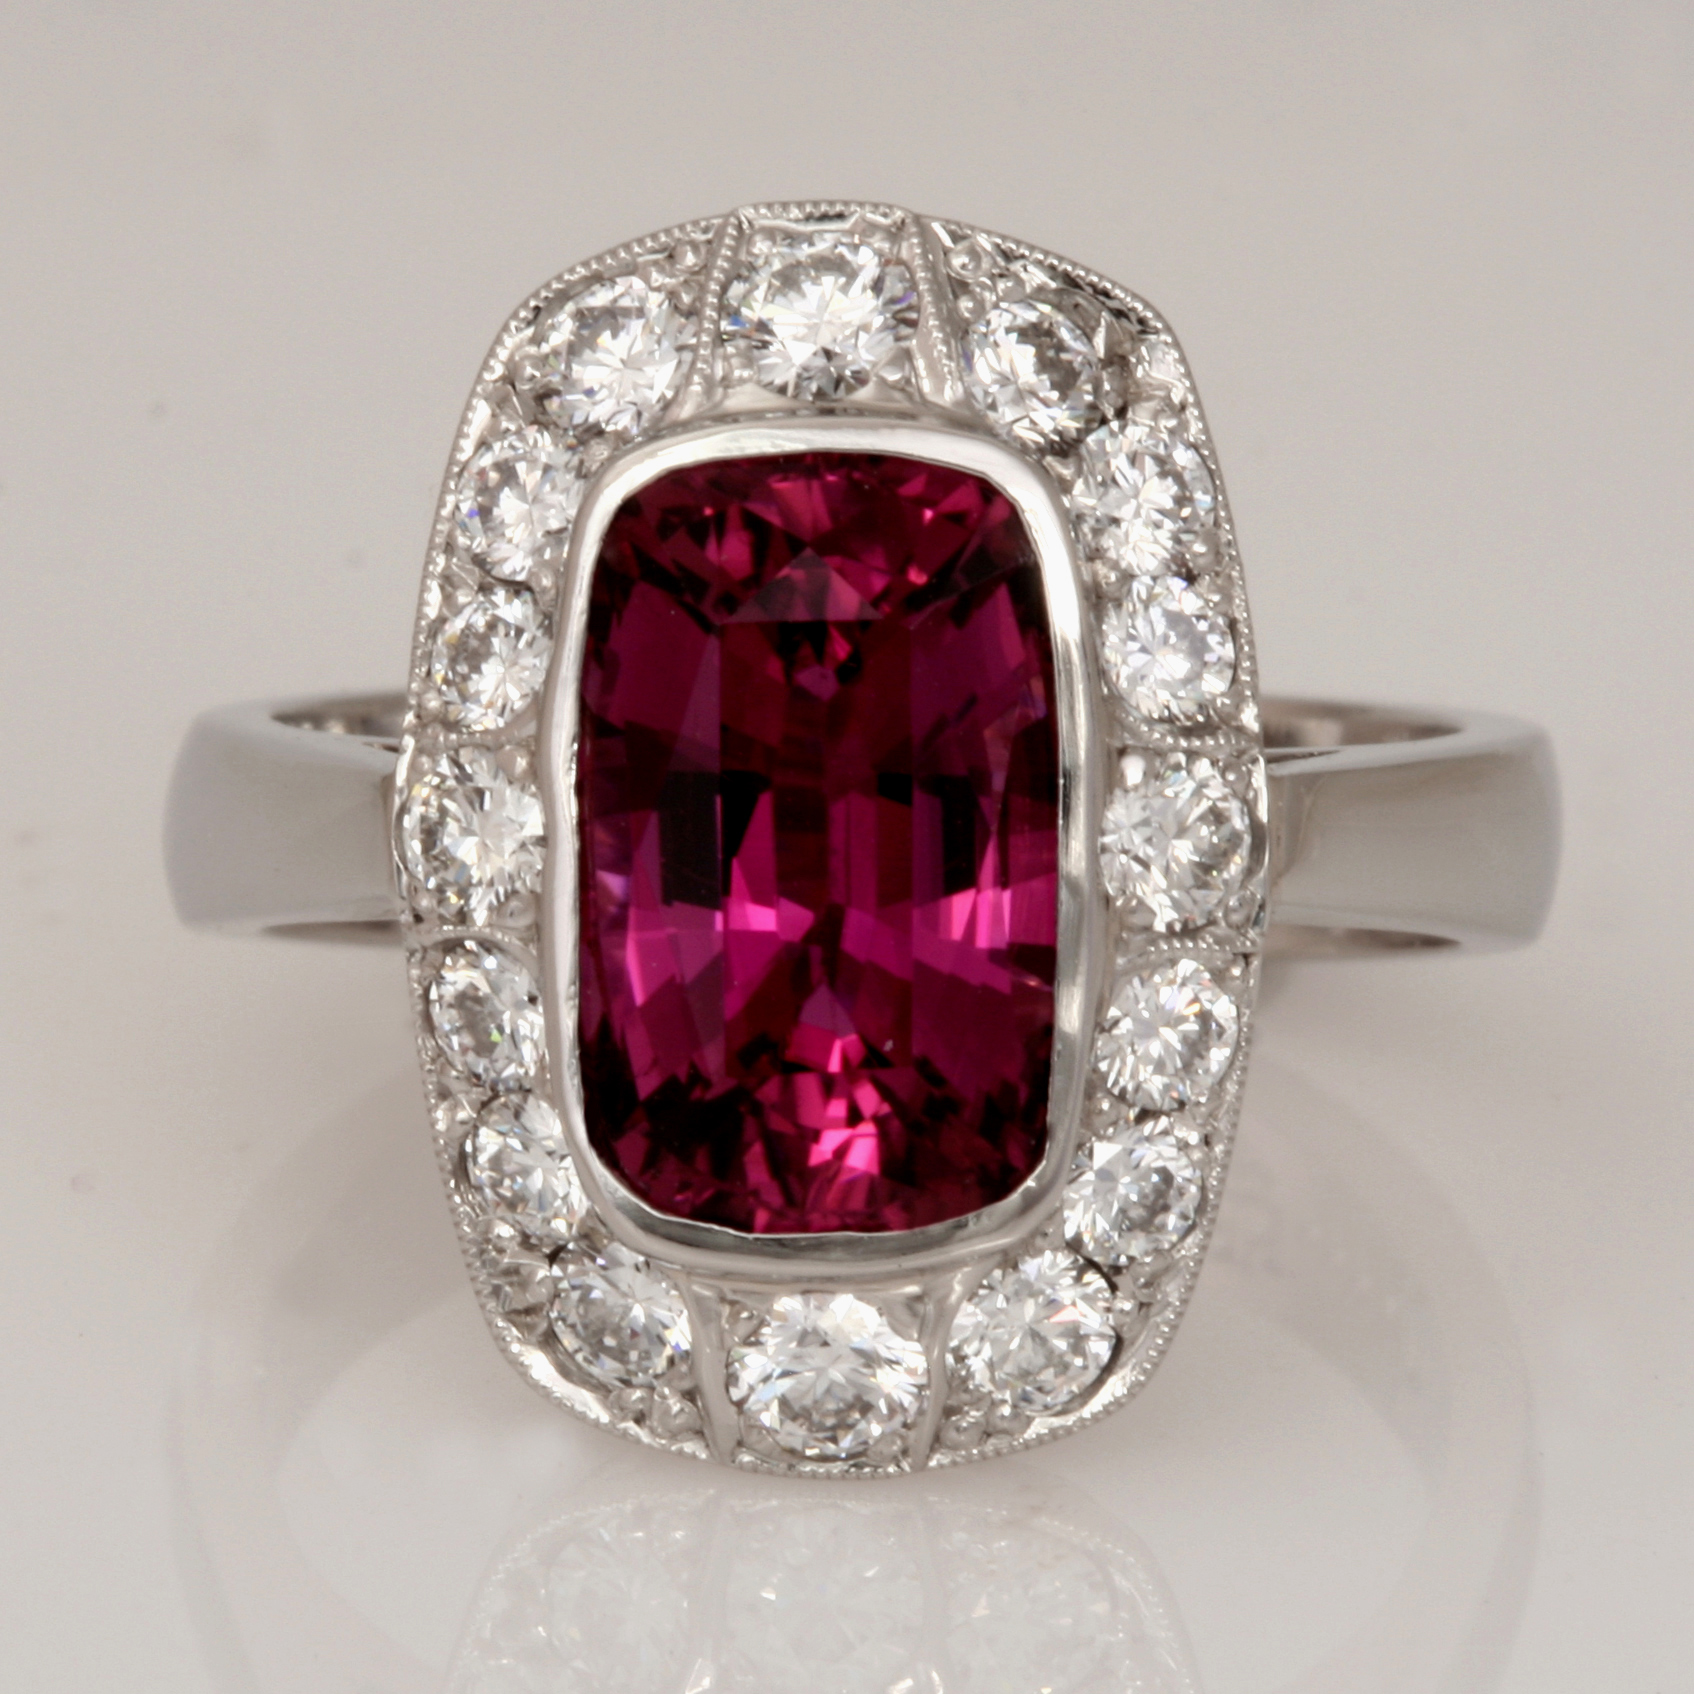 Handmade ladies palladium rectangular cushion cut rubelite and diamond ring featuring a hidden bouquet of green gold and rose gold pressed flowers